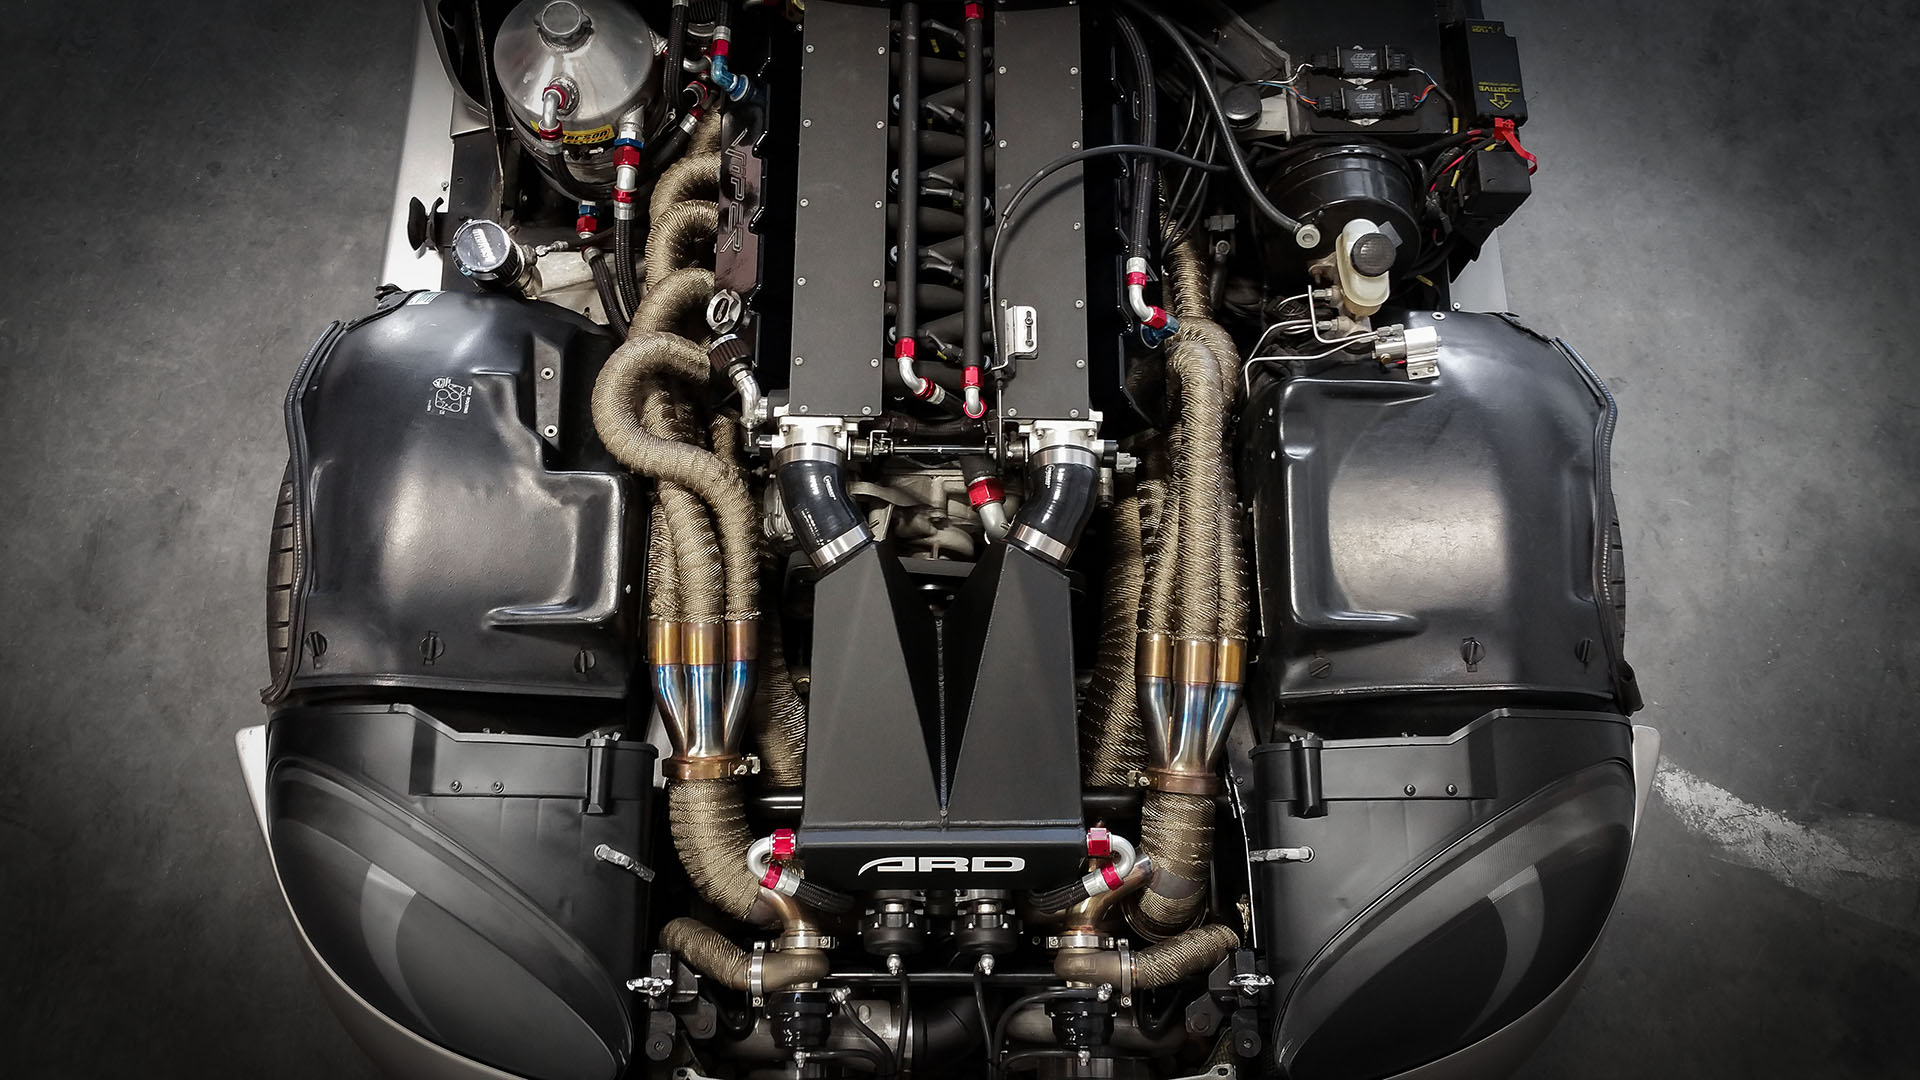 Click image for larger version  Name:ARD_Viper_Motor_Top_View.jpg Views:193 Size:341.6 KB ID:124473